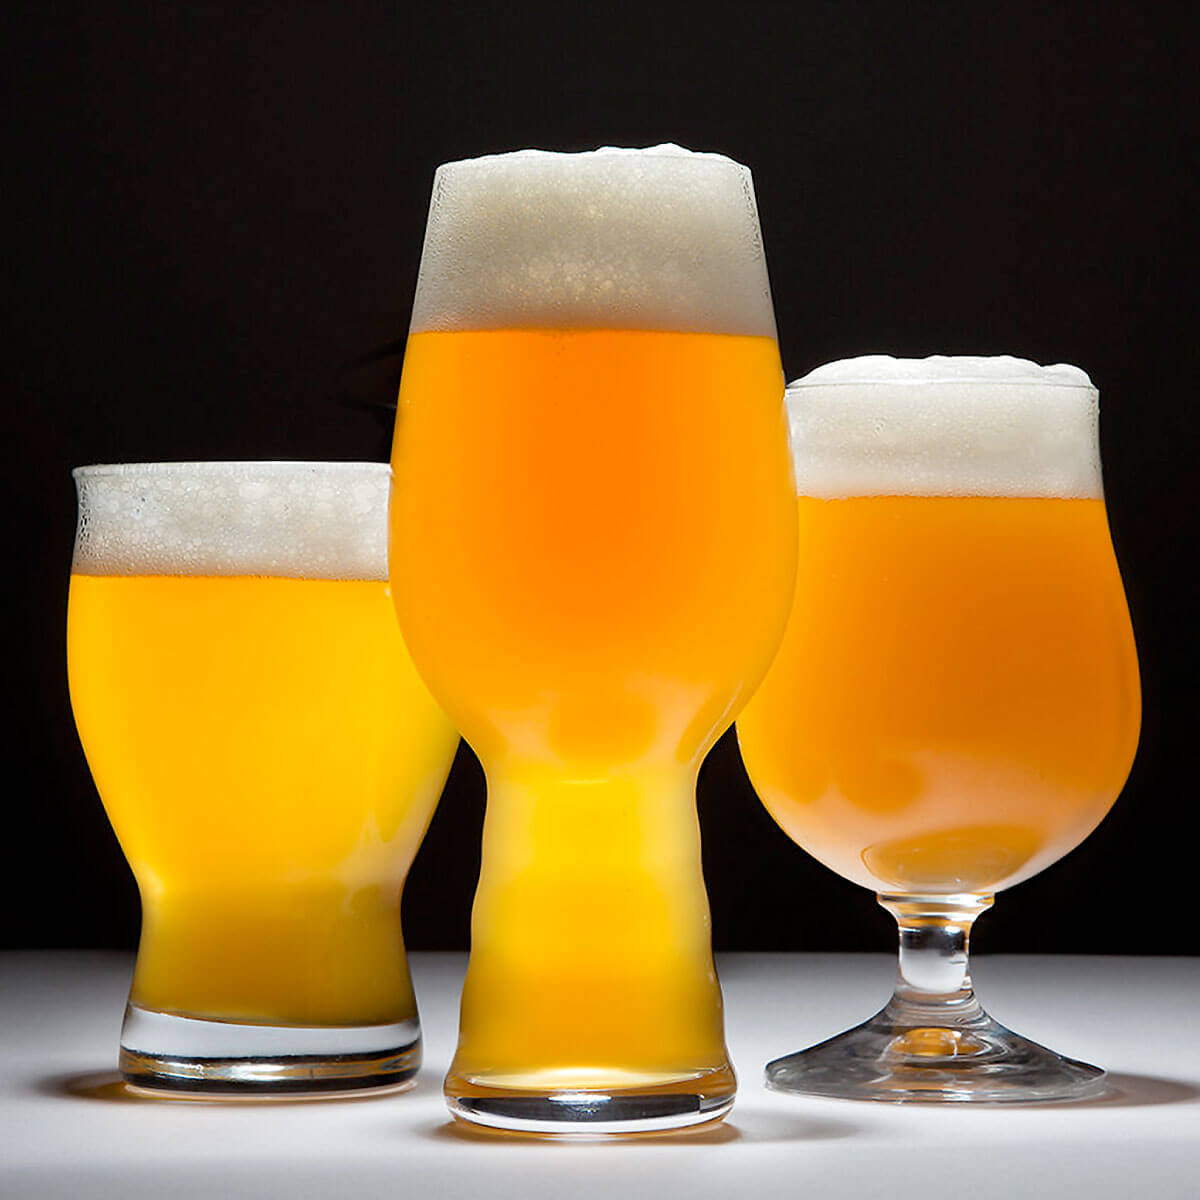 A New England IPA or Hazy IPA in Assorted Glassware